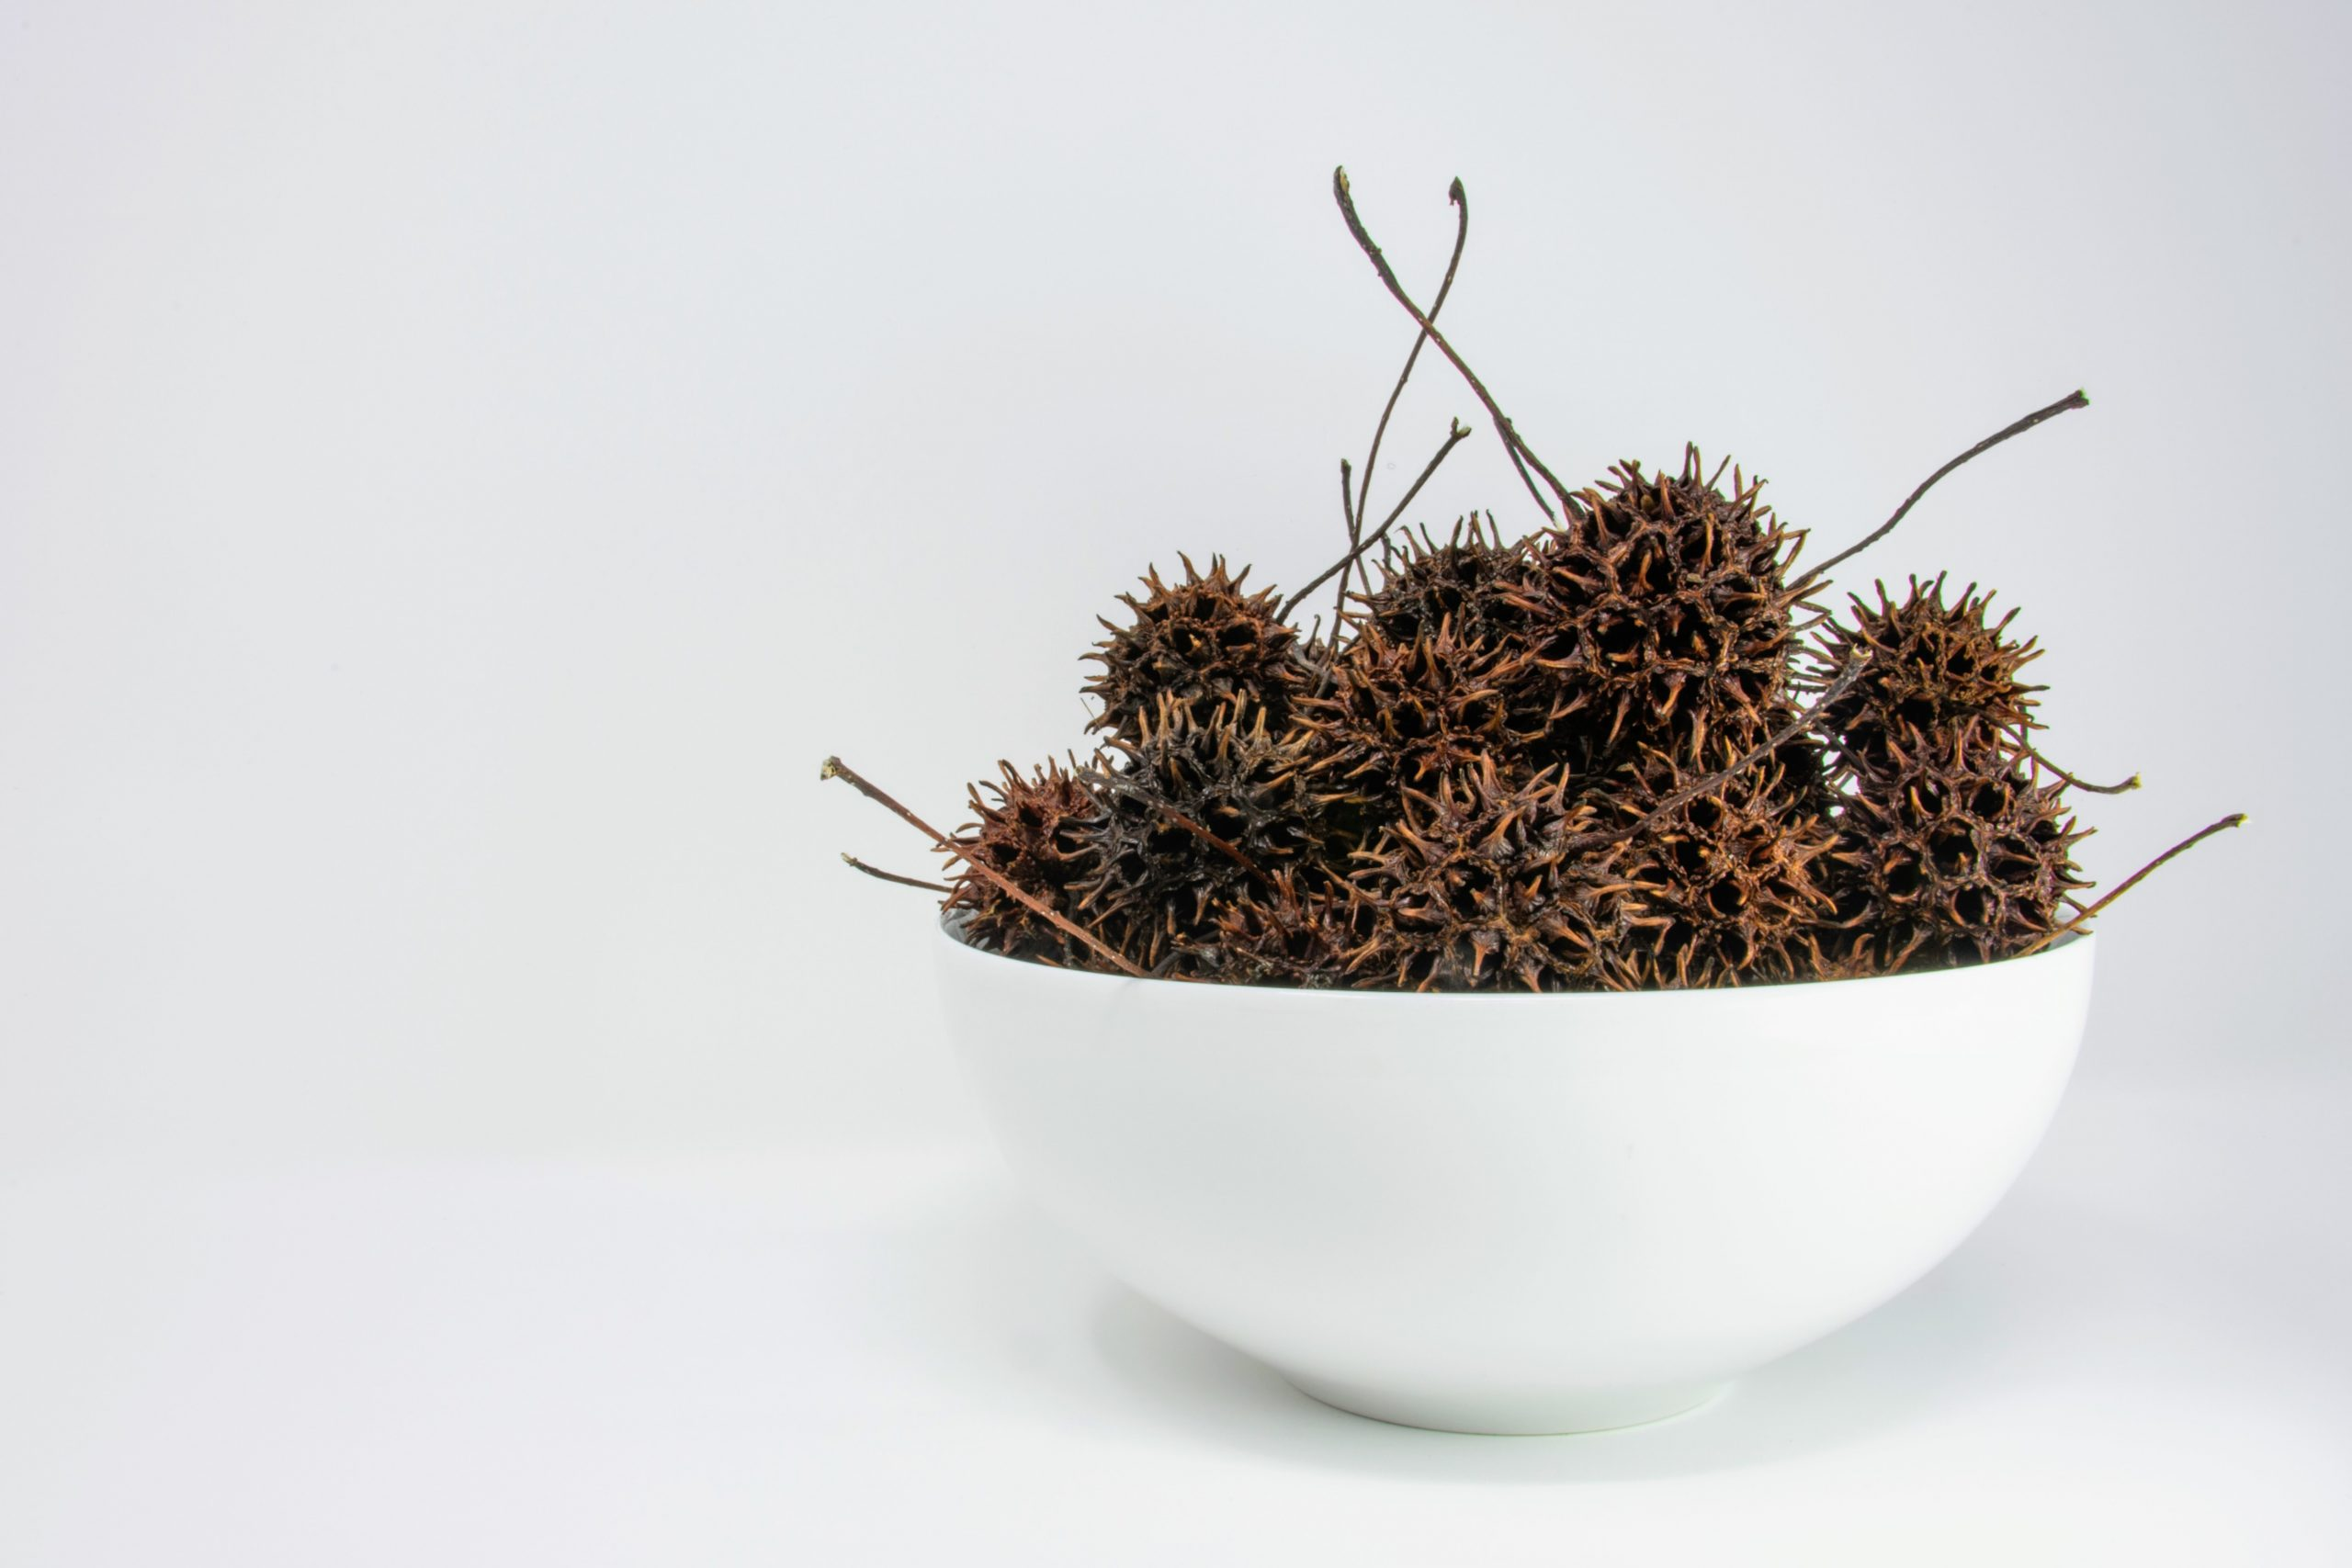 Witches Burrs from sweet gum tree